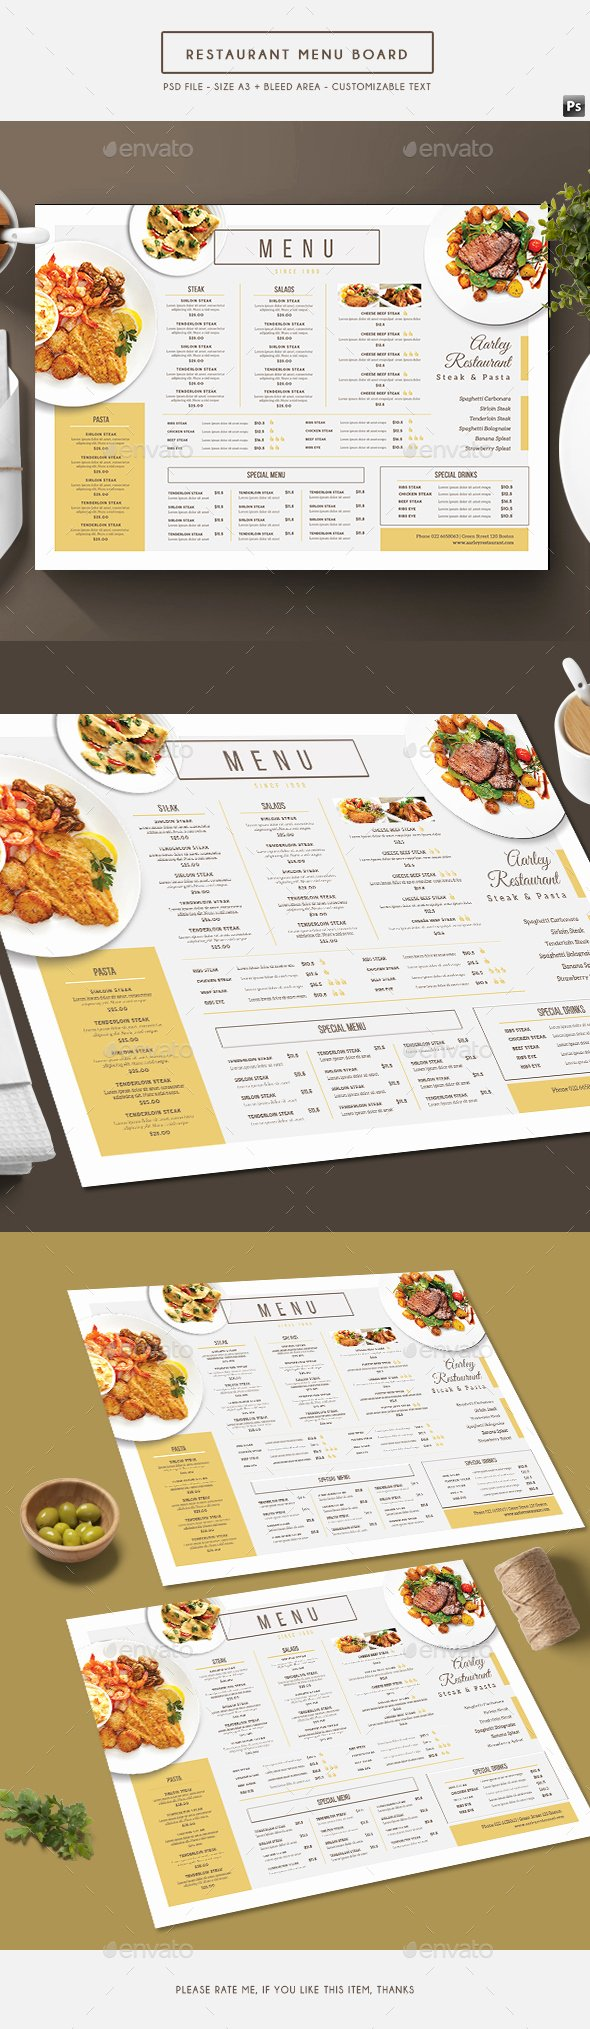 Simple Restaurant Menu Board by Arifpoernomo